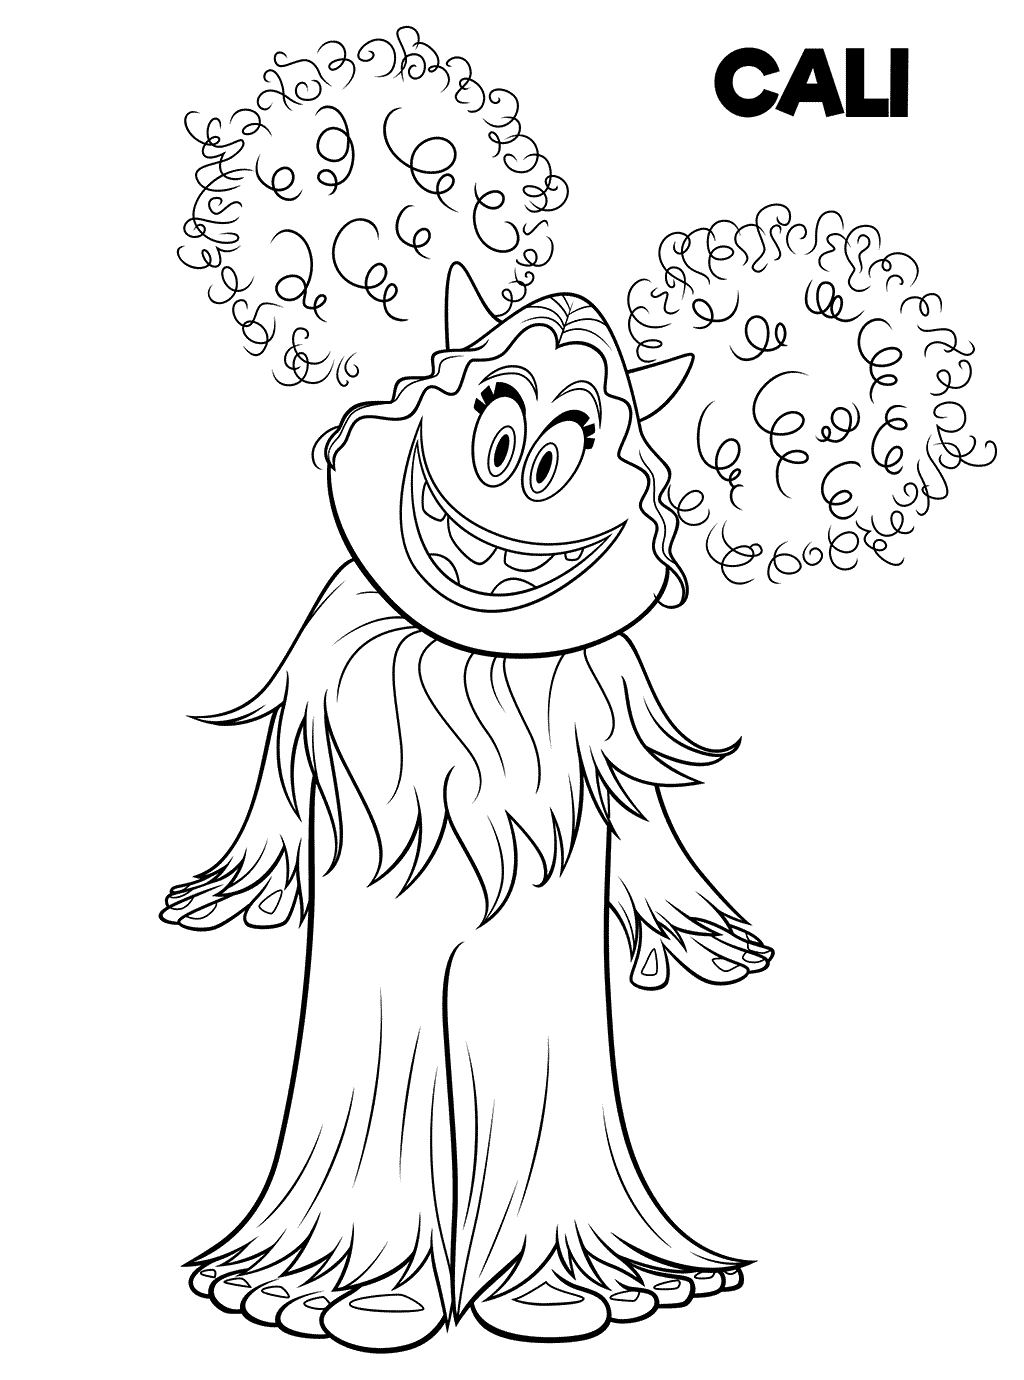 bigfoot presents coloring pages - photo#25